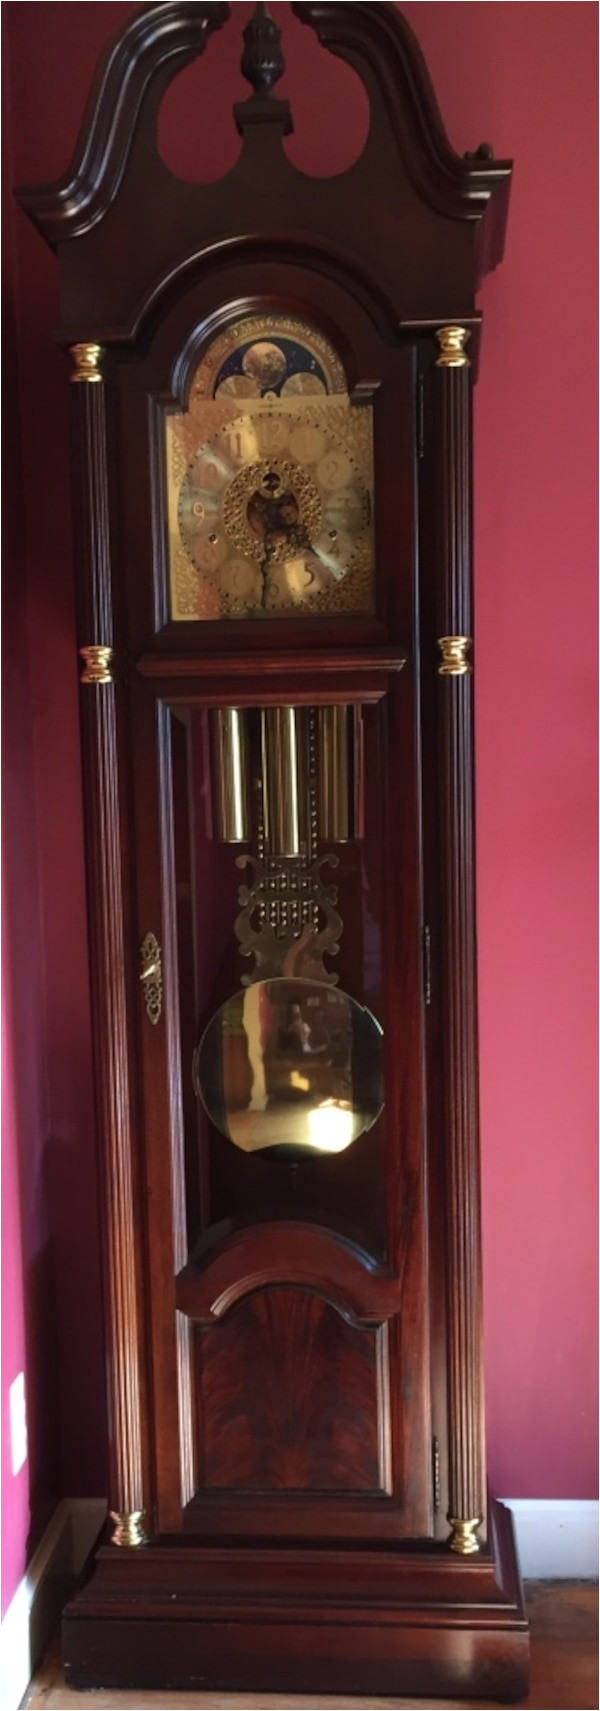 Ridgeway Grandfather Clock Won T Chime Used Howard Miller Grandfather Clock Model Number 610 220 for Sale